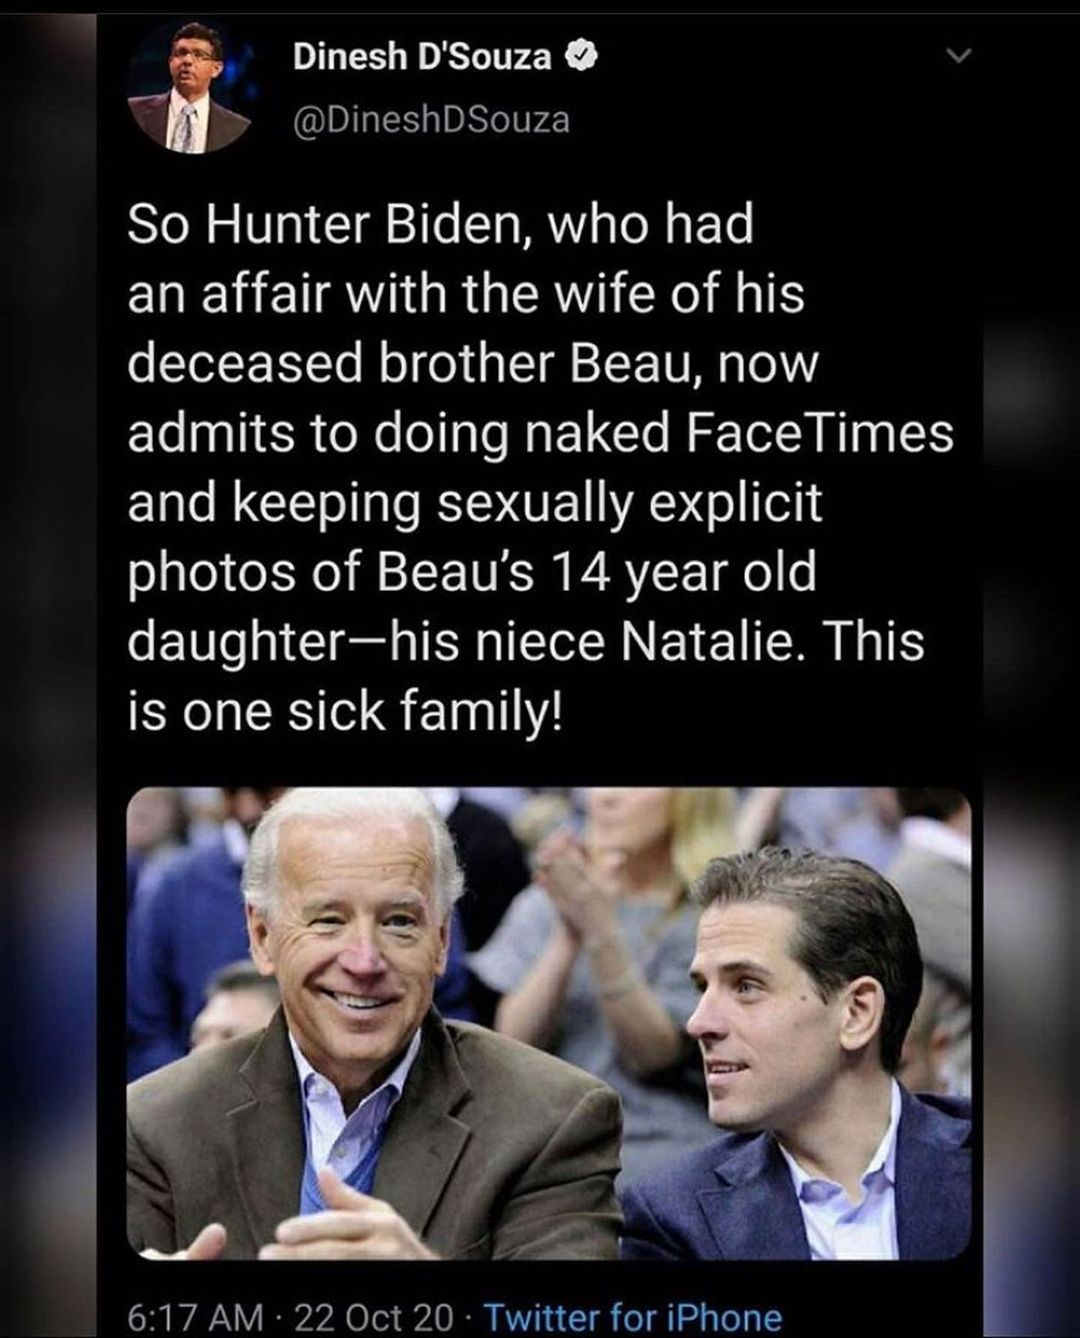 Hunter Biden, now admits to doing naked FaceTimes and keeping sexually explicit photos of Beau's 14 year old daughter-his niece Natalie